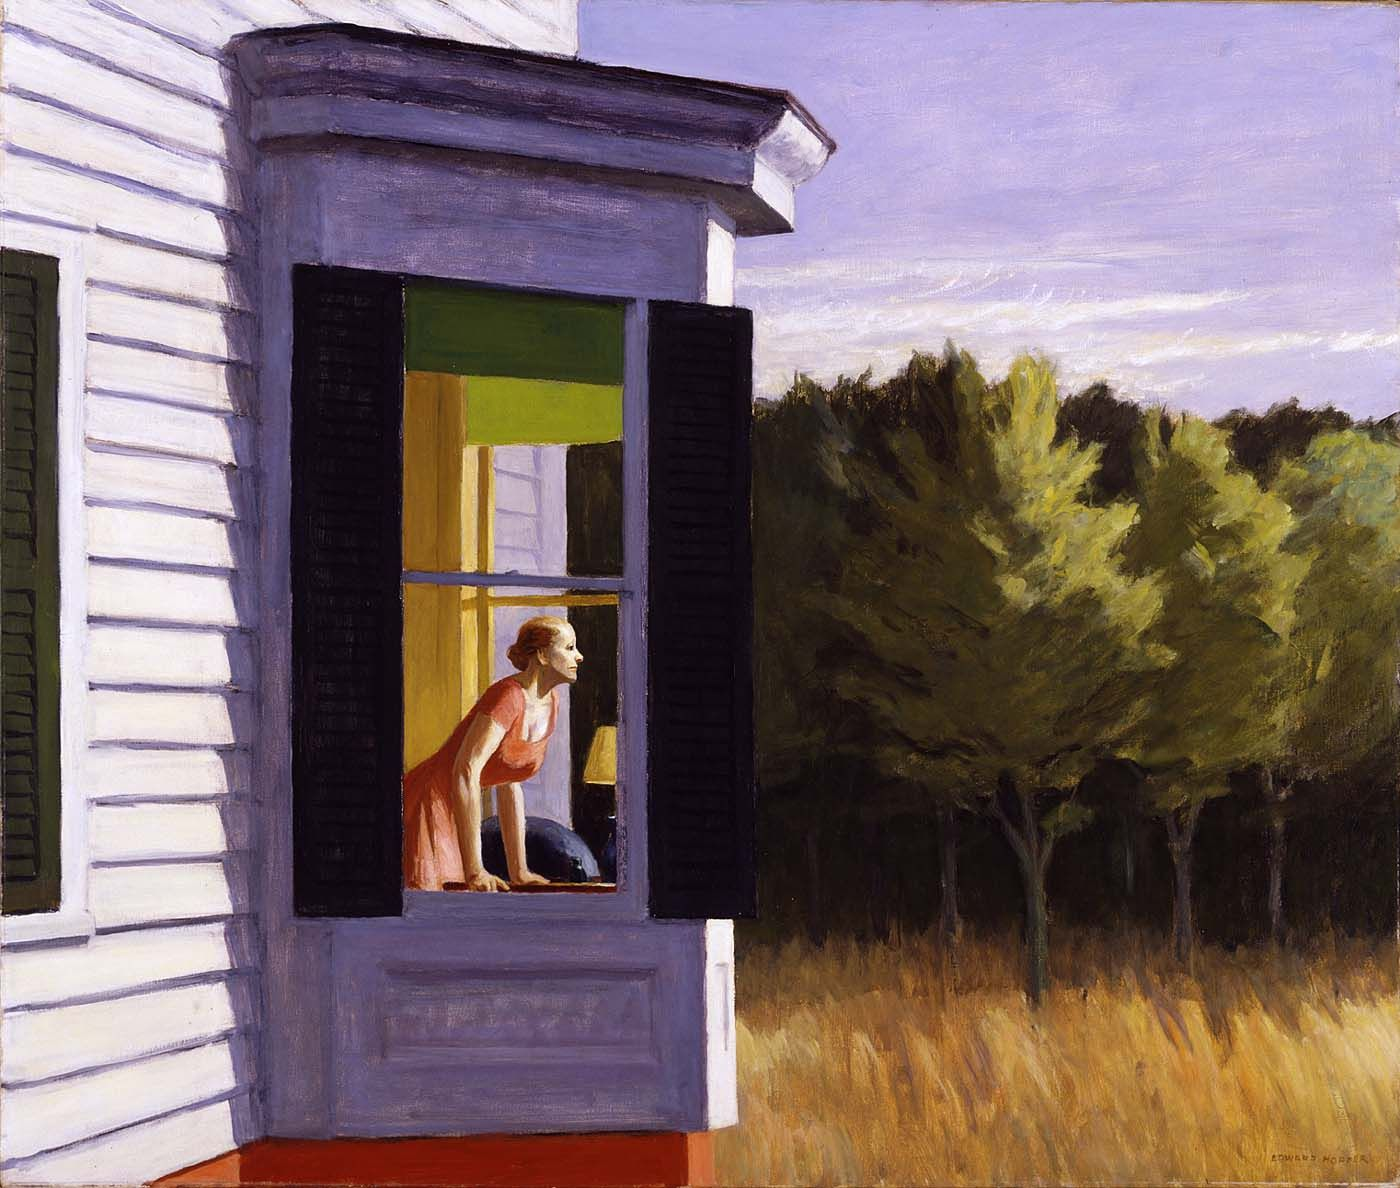 Edward hopper art hopper fen tre peinture window for Fenetre windows